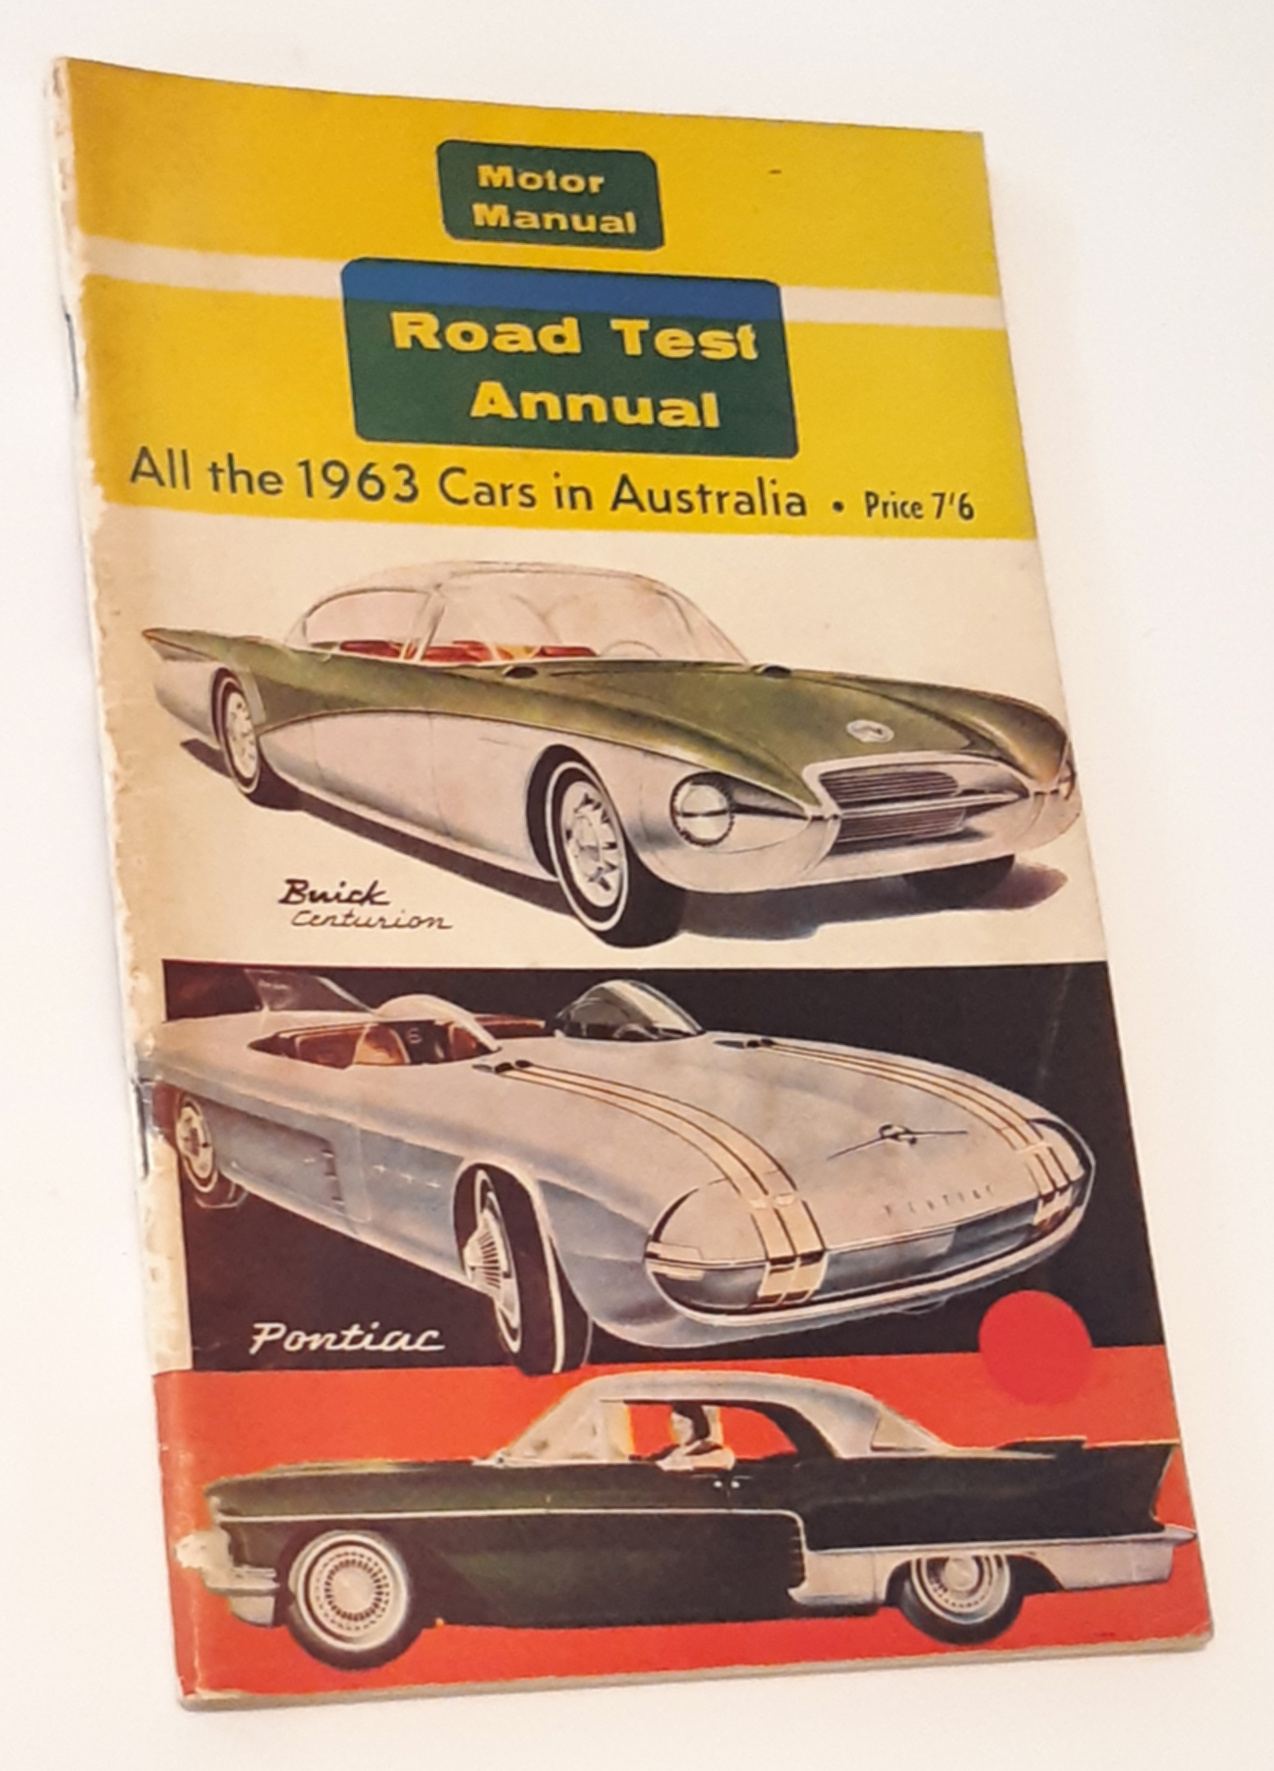 Image for MOTOR MANUAL ROAD TEST ANNUAL. All the 1963 Cars in Australia